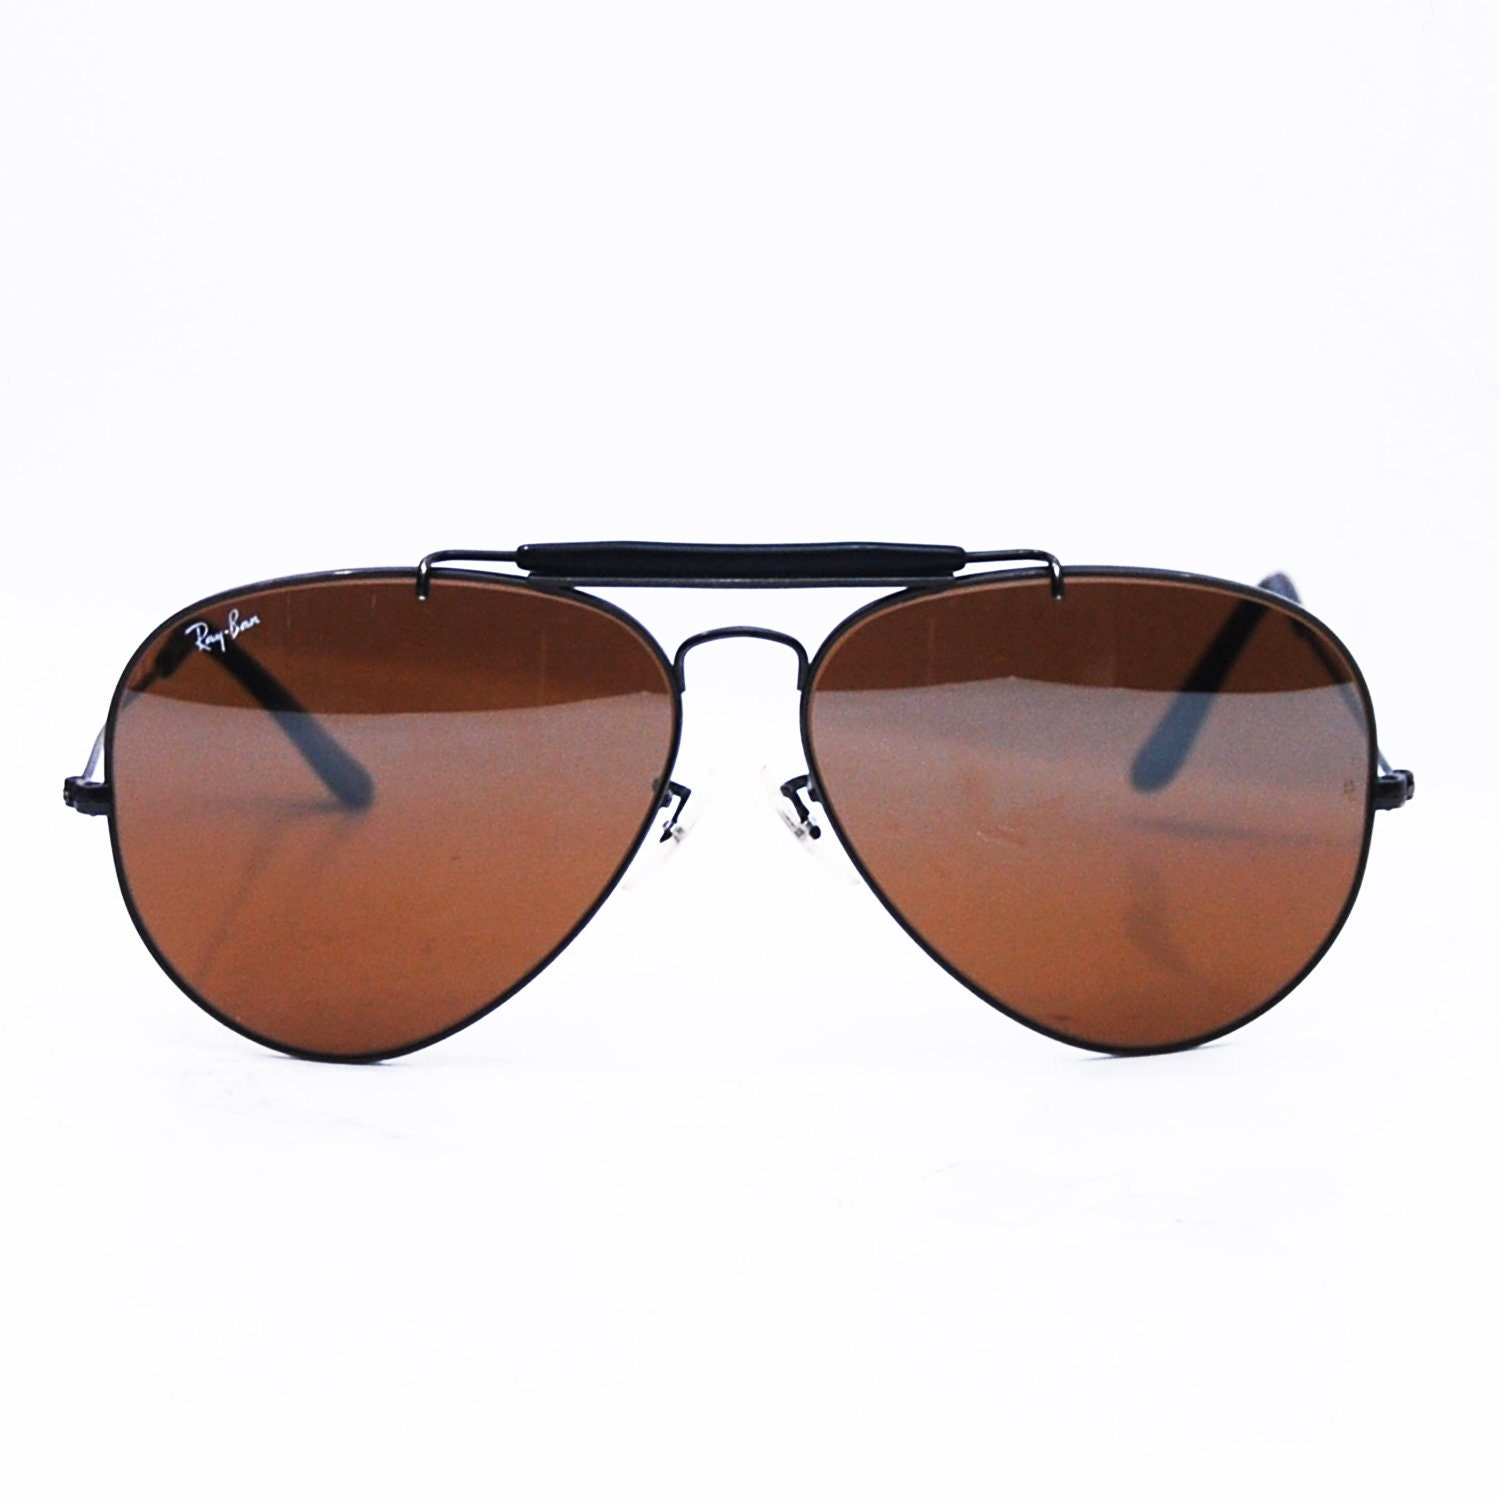 Ray Ban Leathers Driving Series B15 Tgm  25b5f05fd8